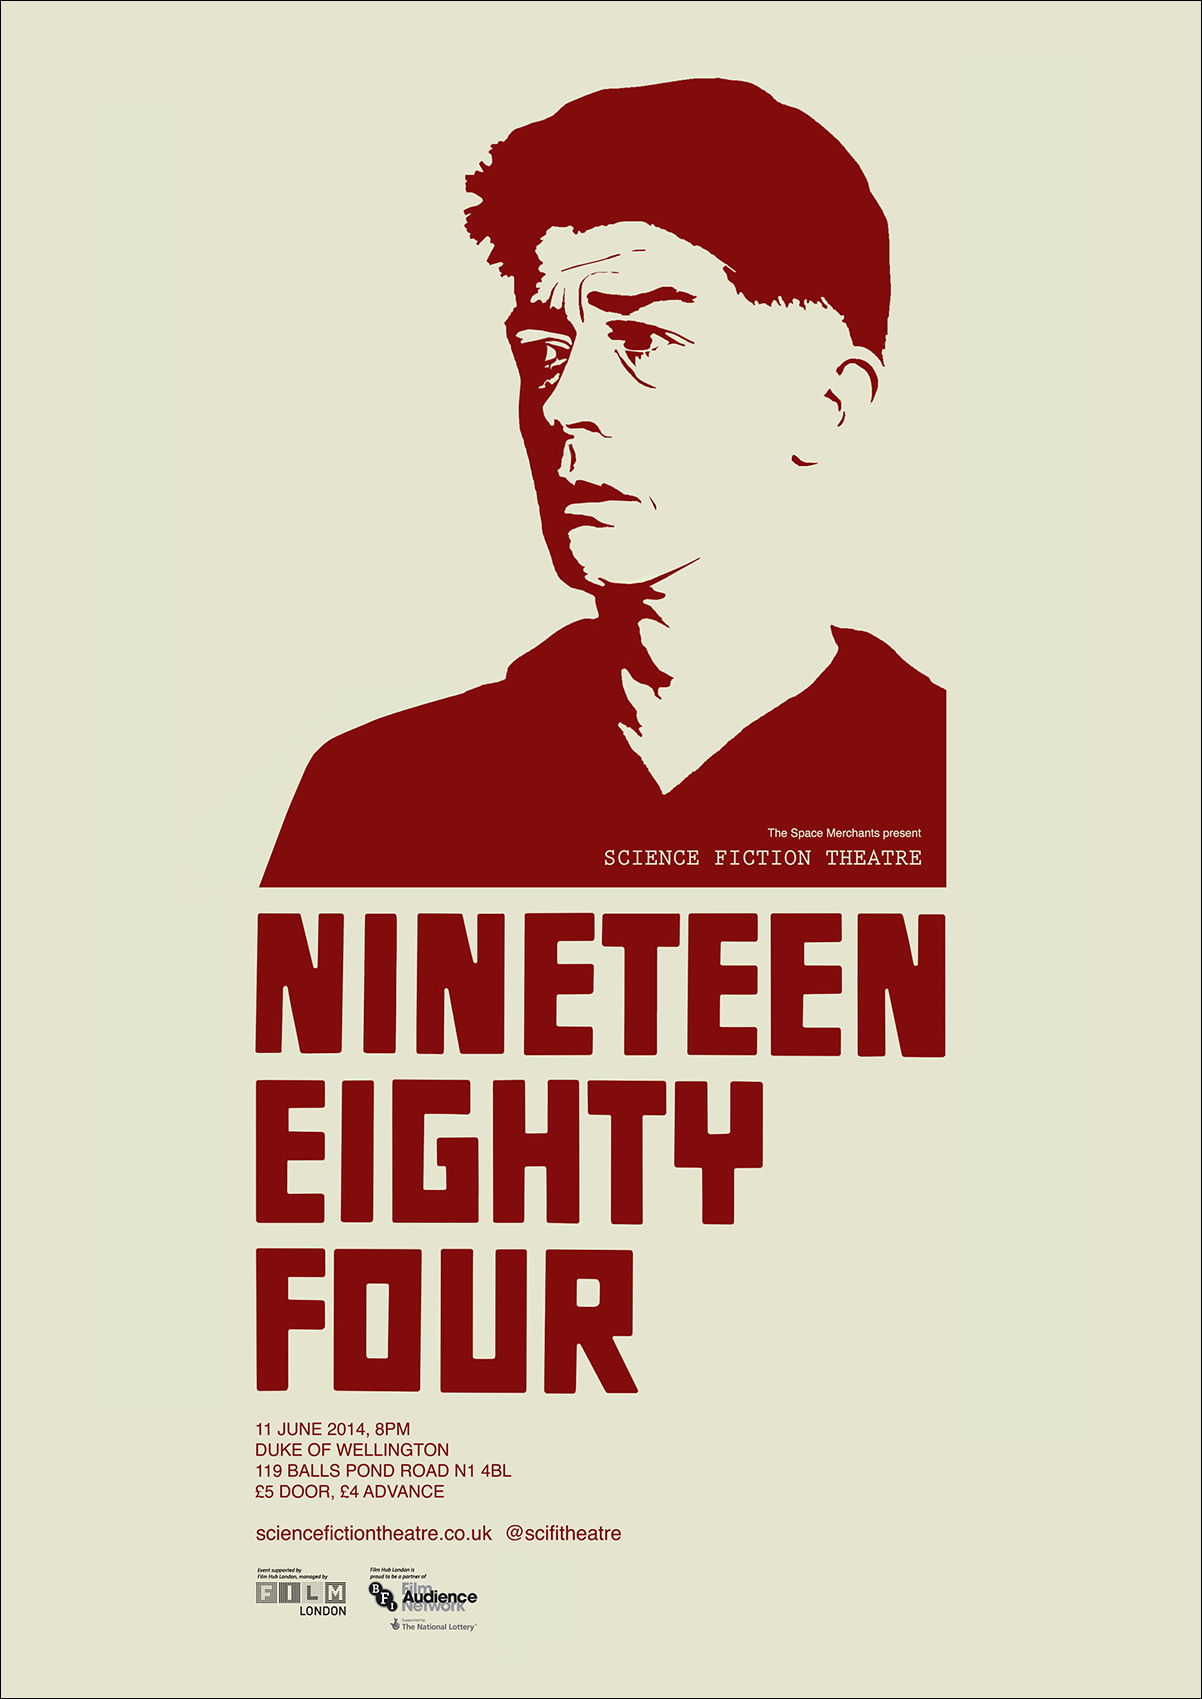 a marxist analysis of nineteen eighty four Written in 1948, 1984 was george orwell's chilling prophecy about the future   meyers continues with analyses of orwell's major works, including  with  marxism and all his work reflects the influence of british communism.